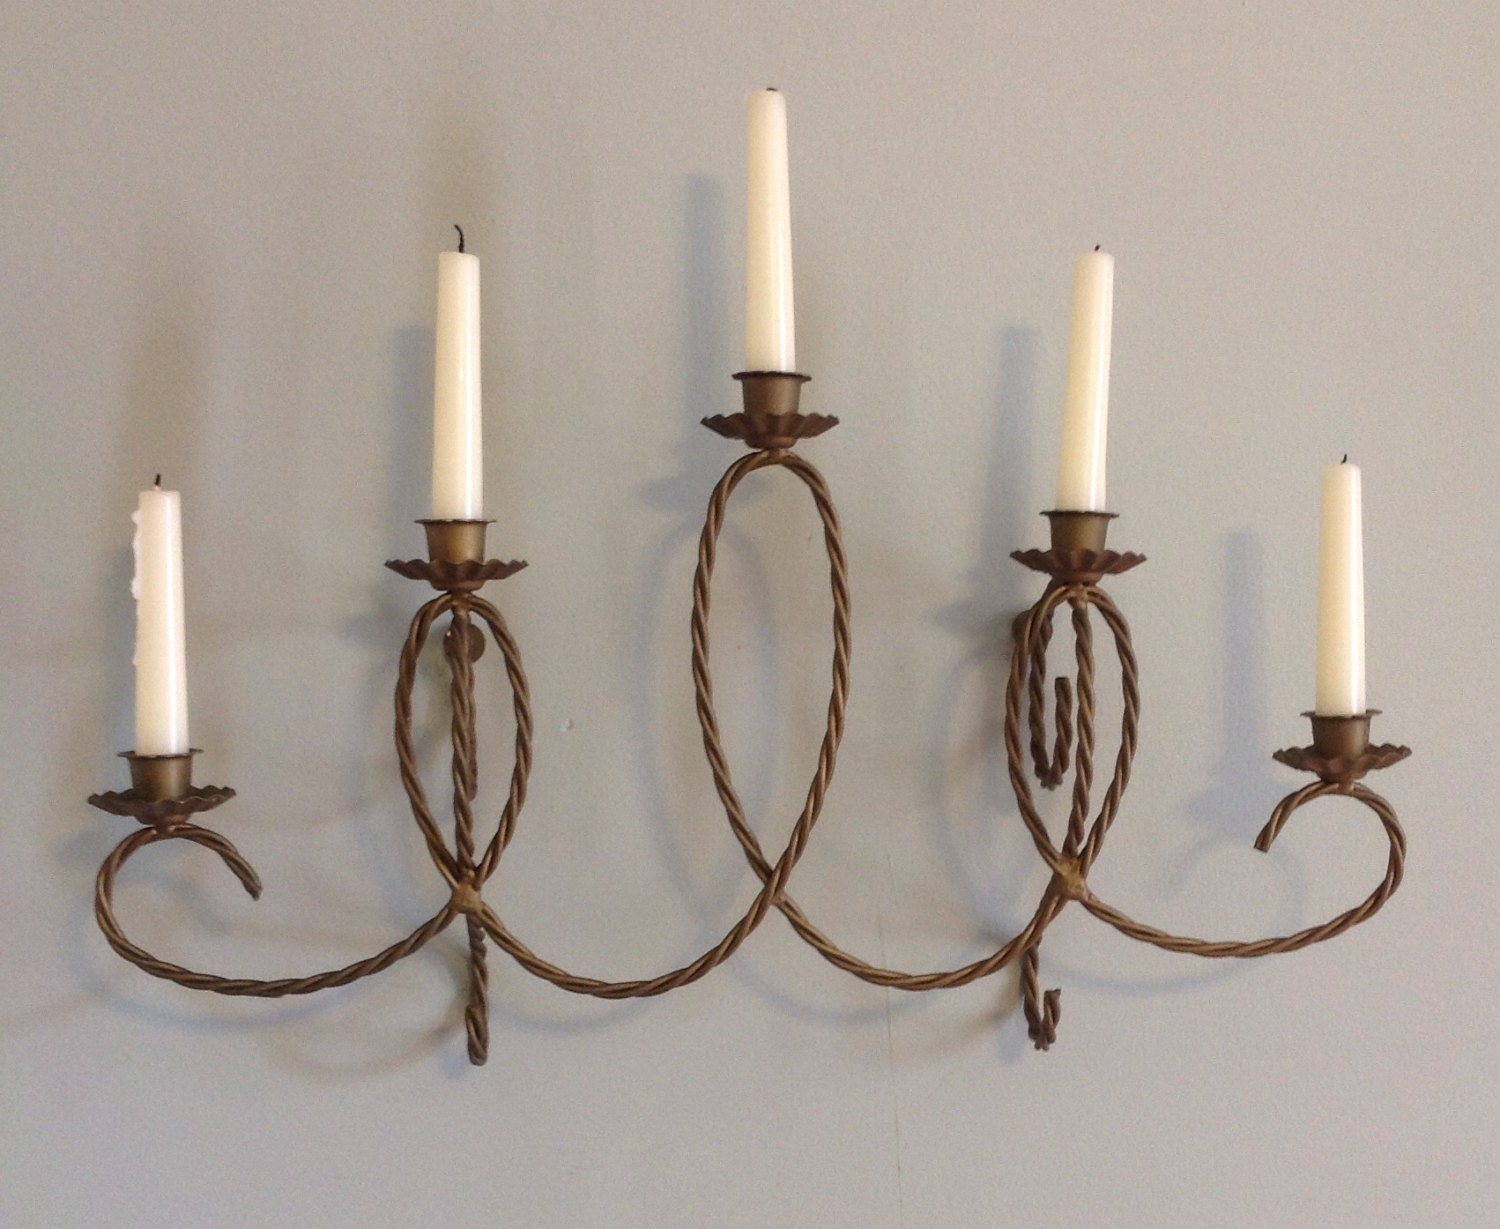 Gold twisted wire metal wall chandelier sconce candle holder